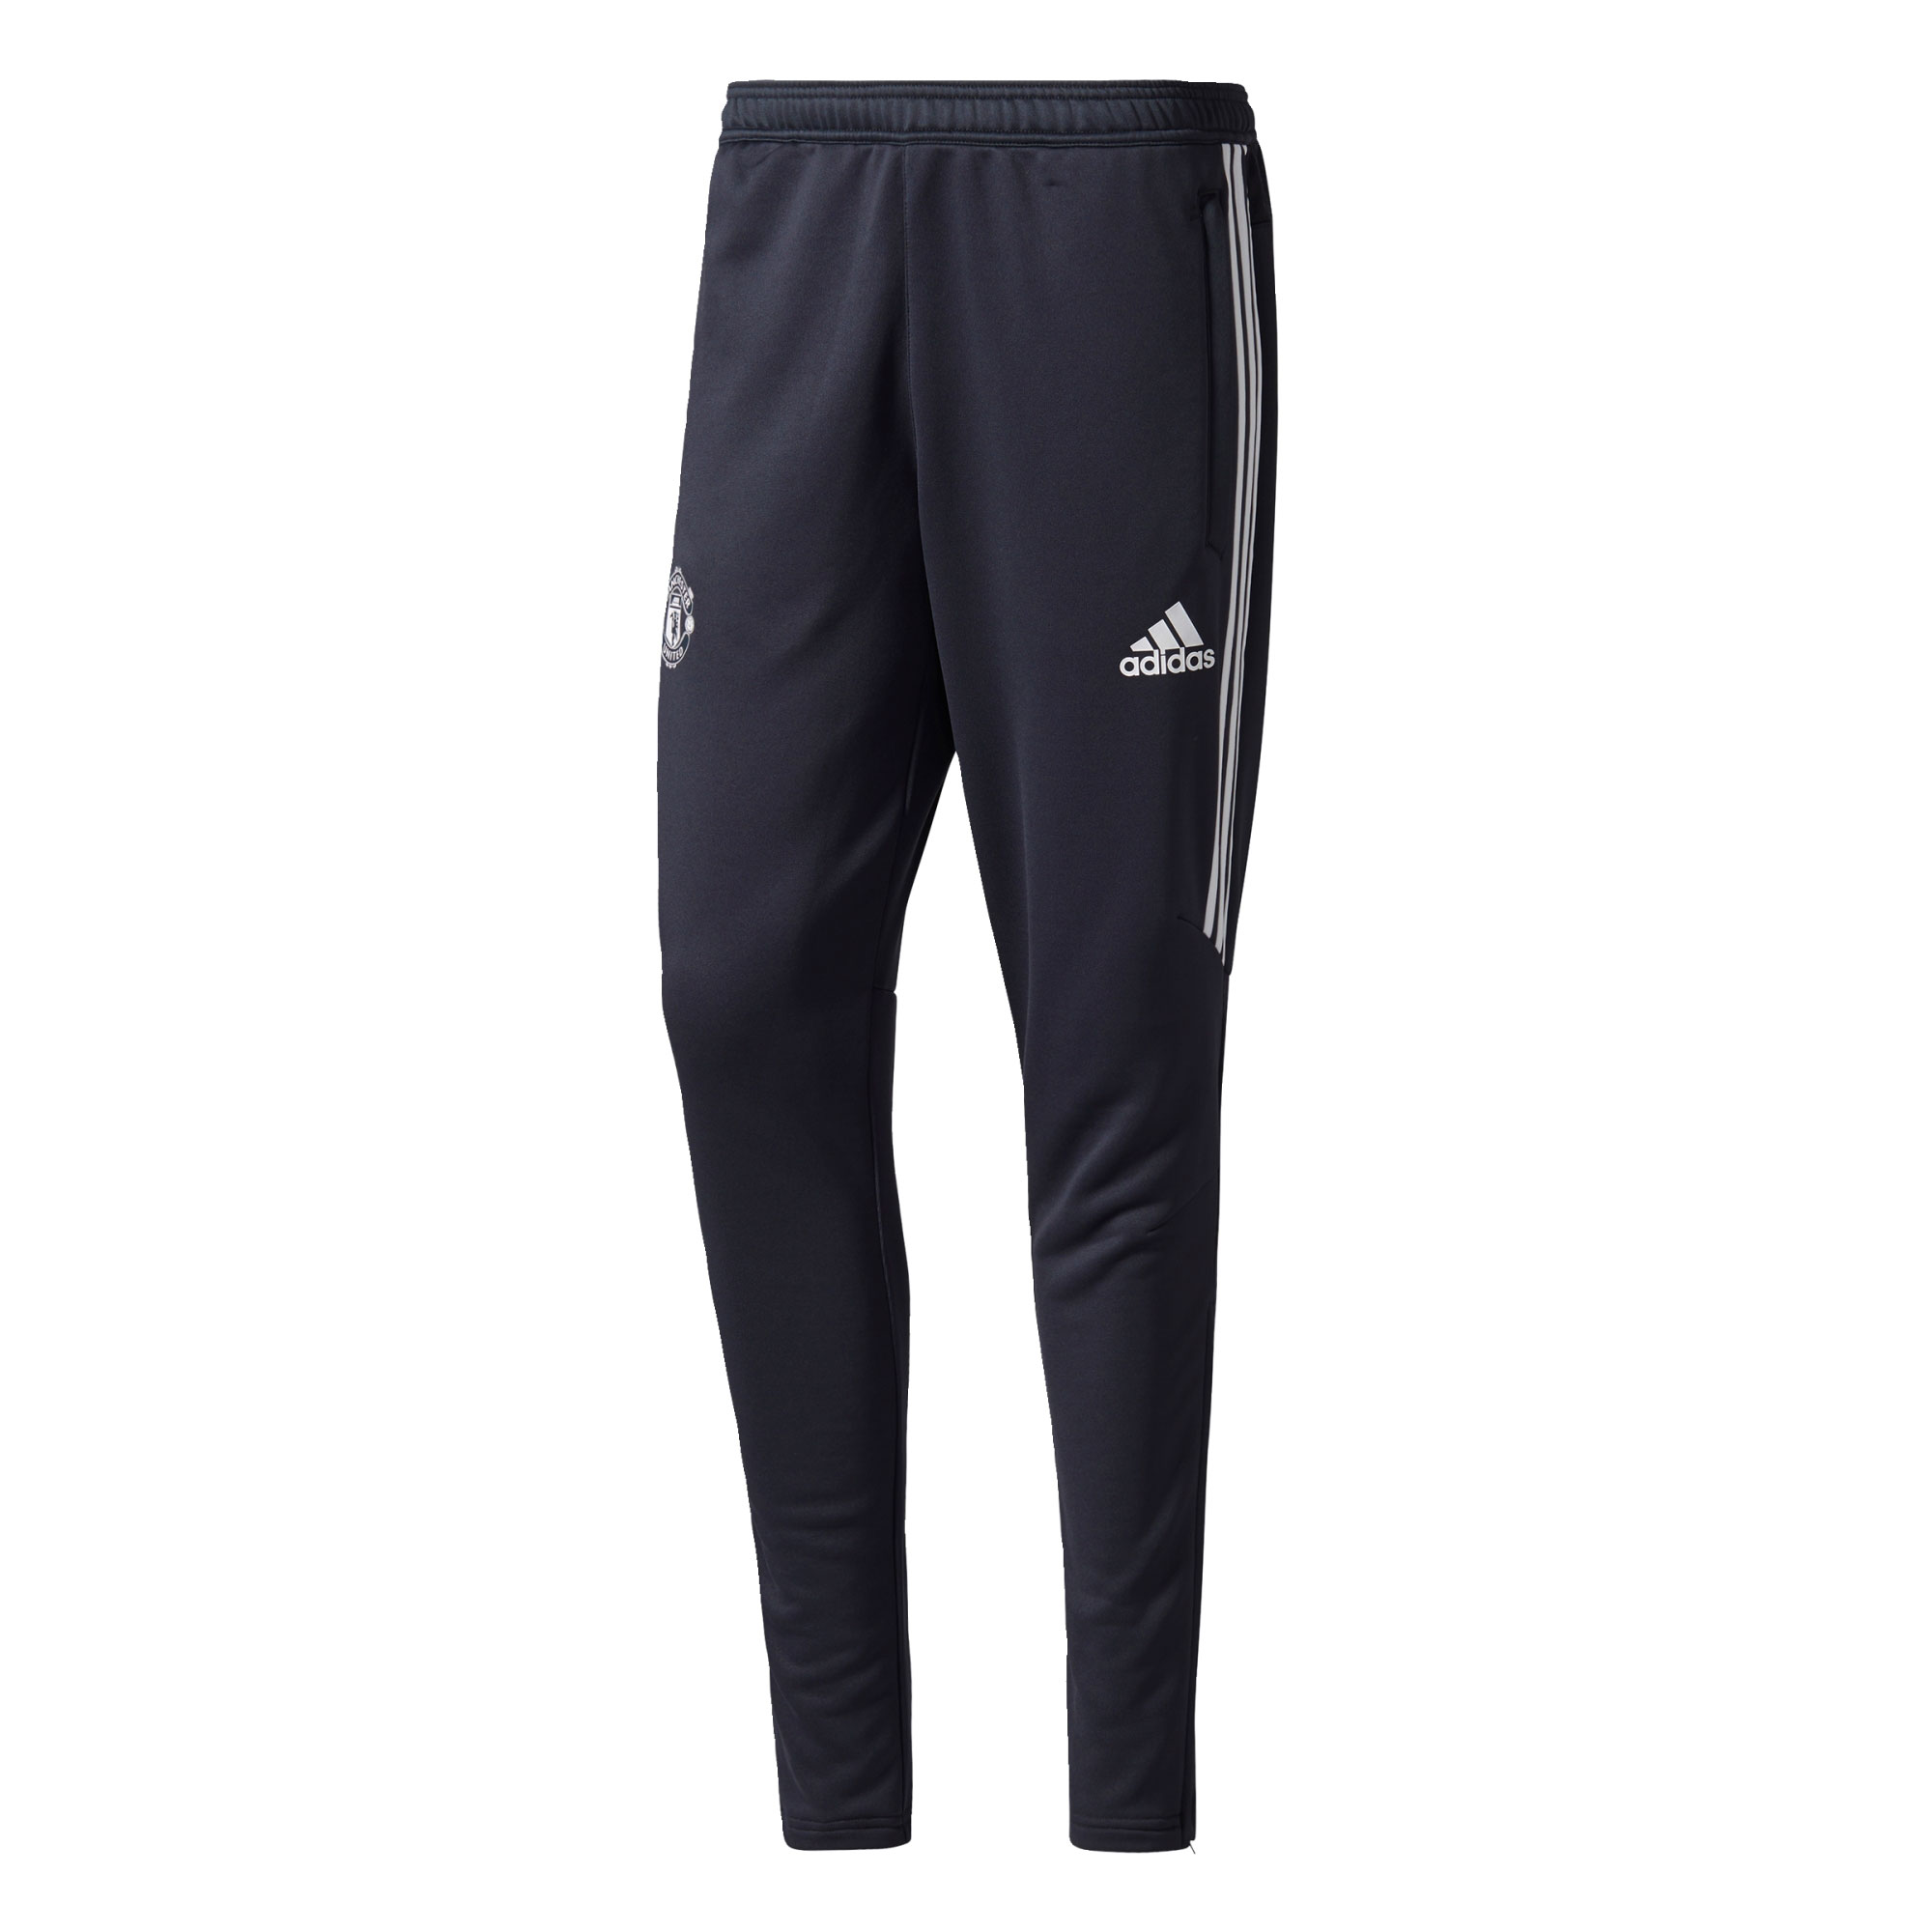 Manchester United Training Pant - Dark Grey